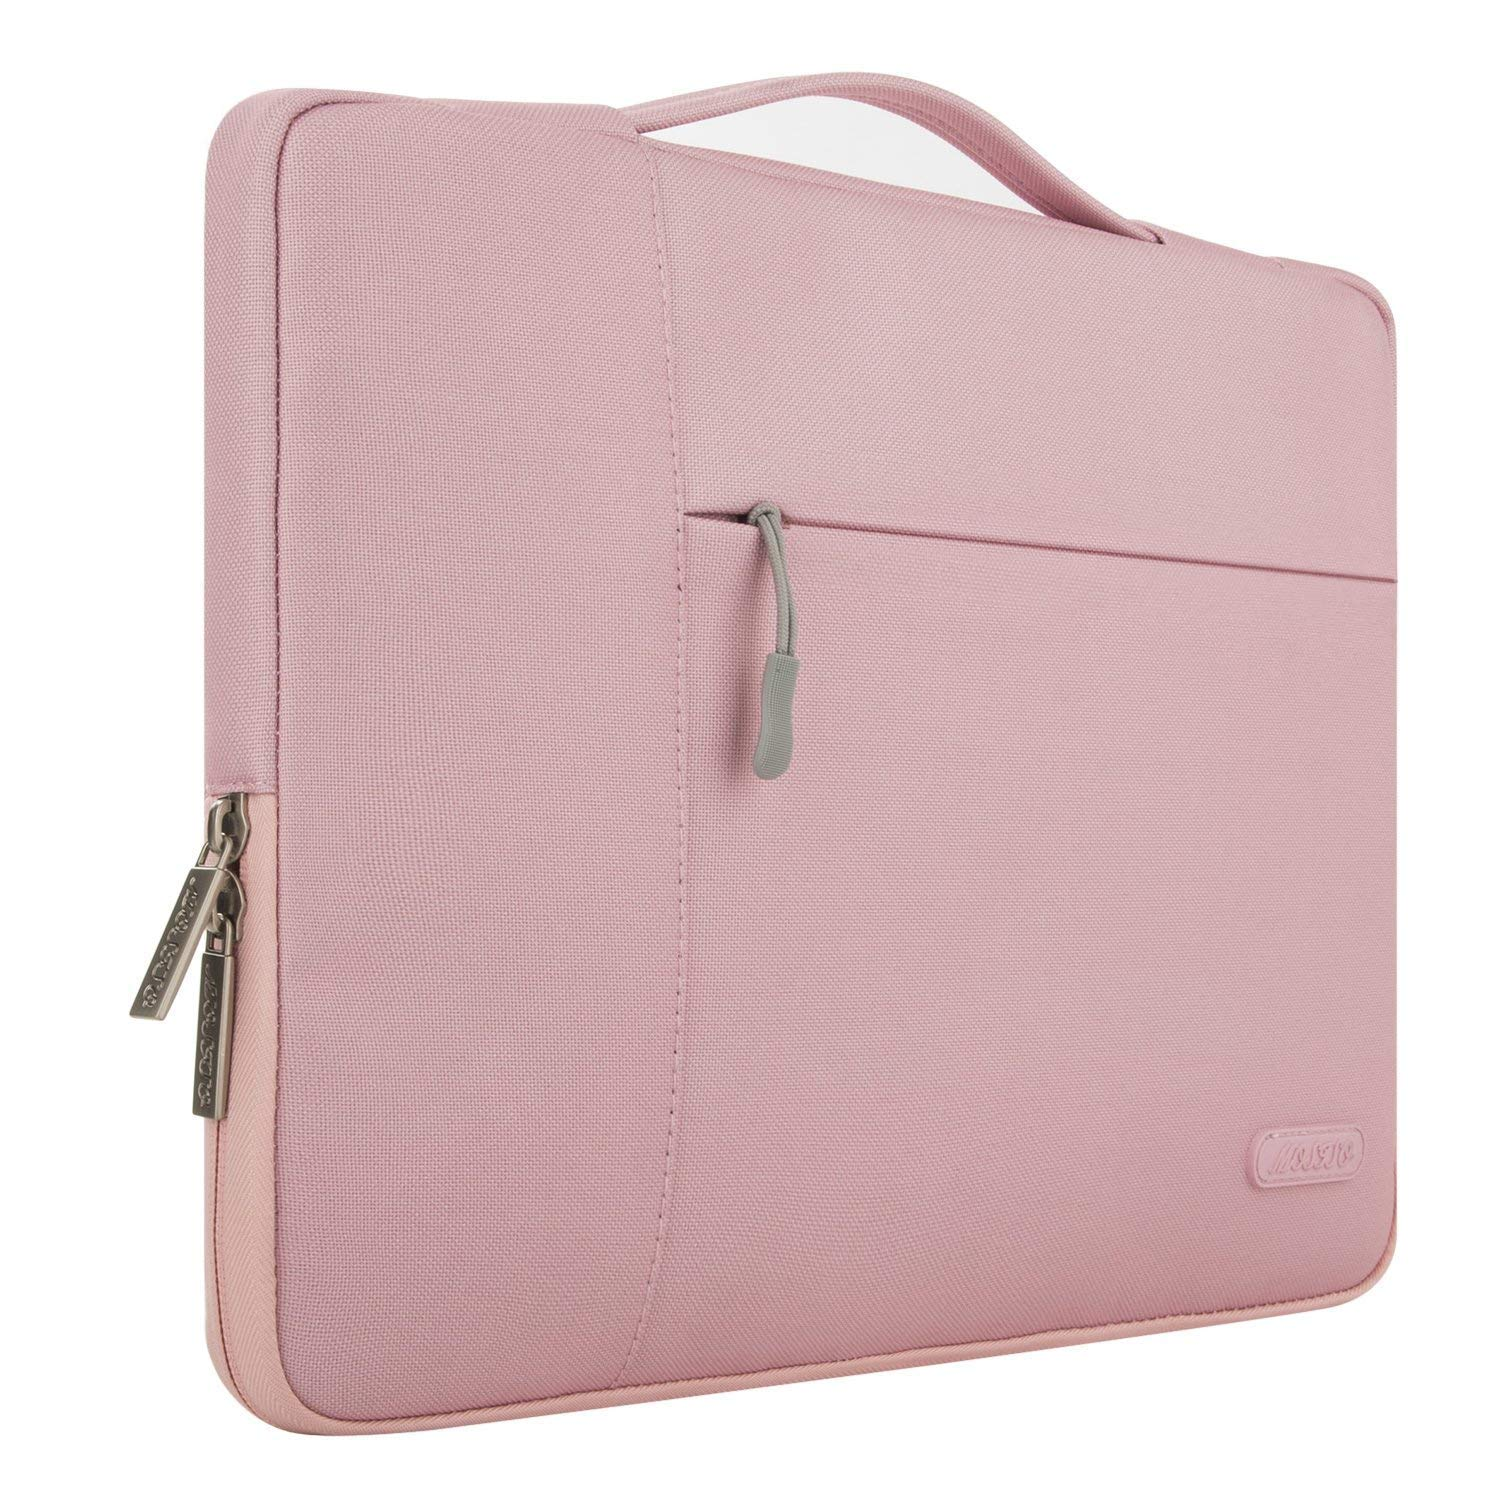 MOSISO iPad Air 3 10.5 2019 Tablet Sleeve Case, Compatible 9.7-11 Inch iPad Pro, iPad Pro 10.5, Surface Go 2018, iPad Air 2/Air (iPad 6/5), iPad 1/2/3/4 Polyester Multifunctional Carrying Bag, Pink by MOSISO